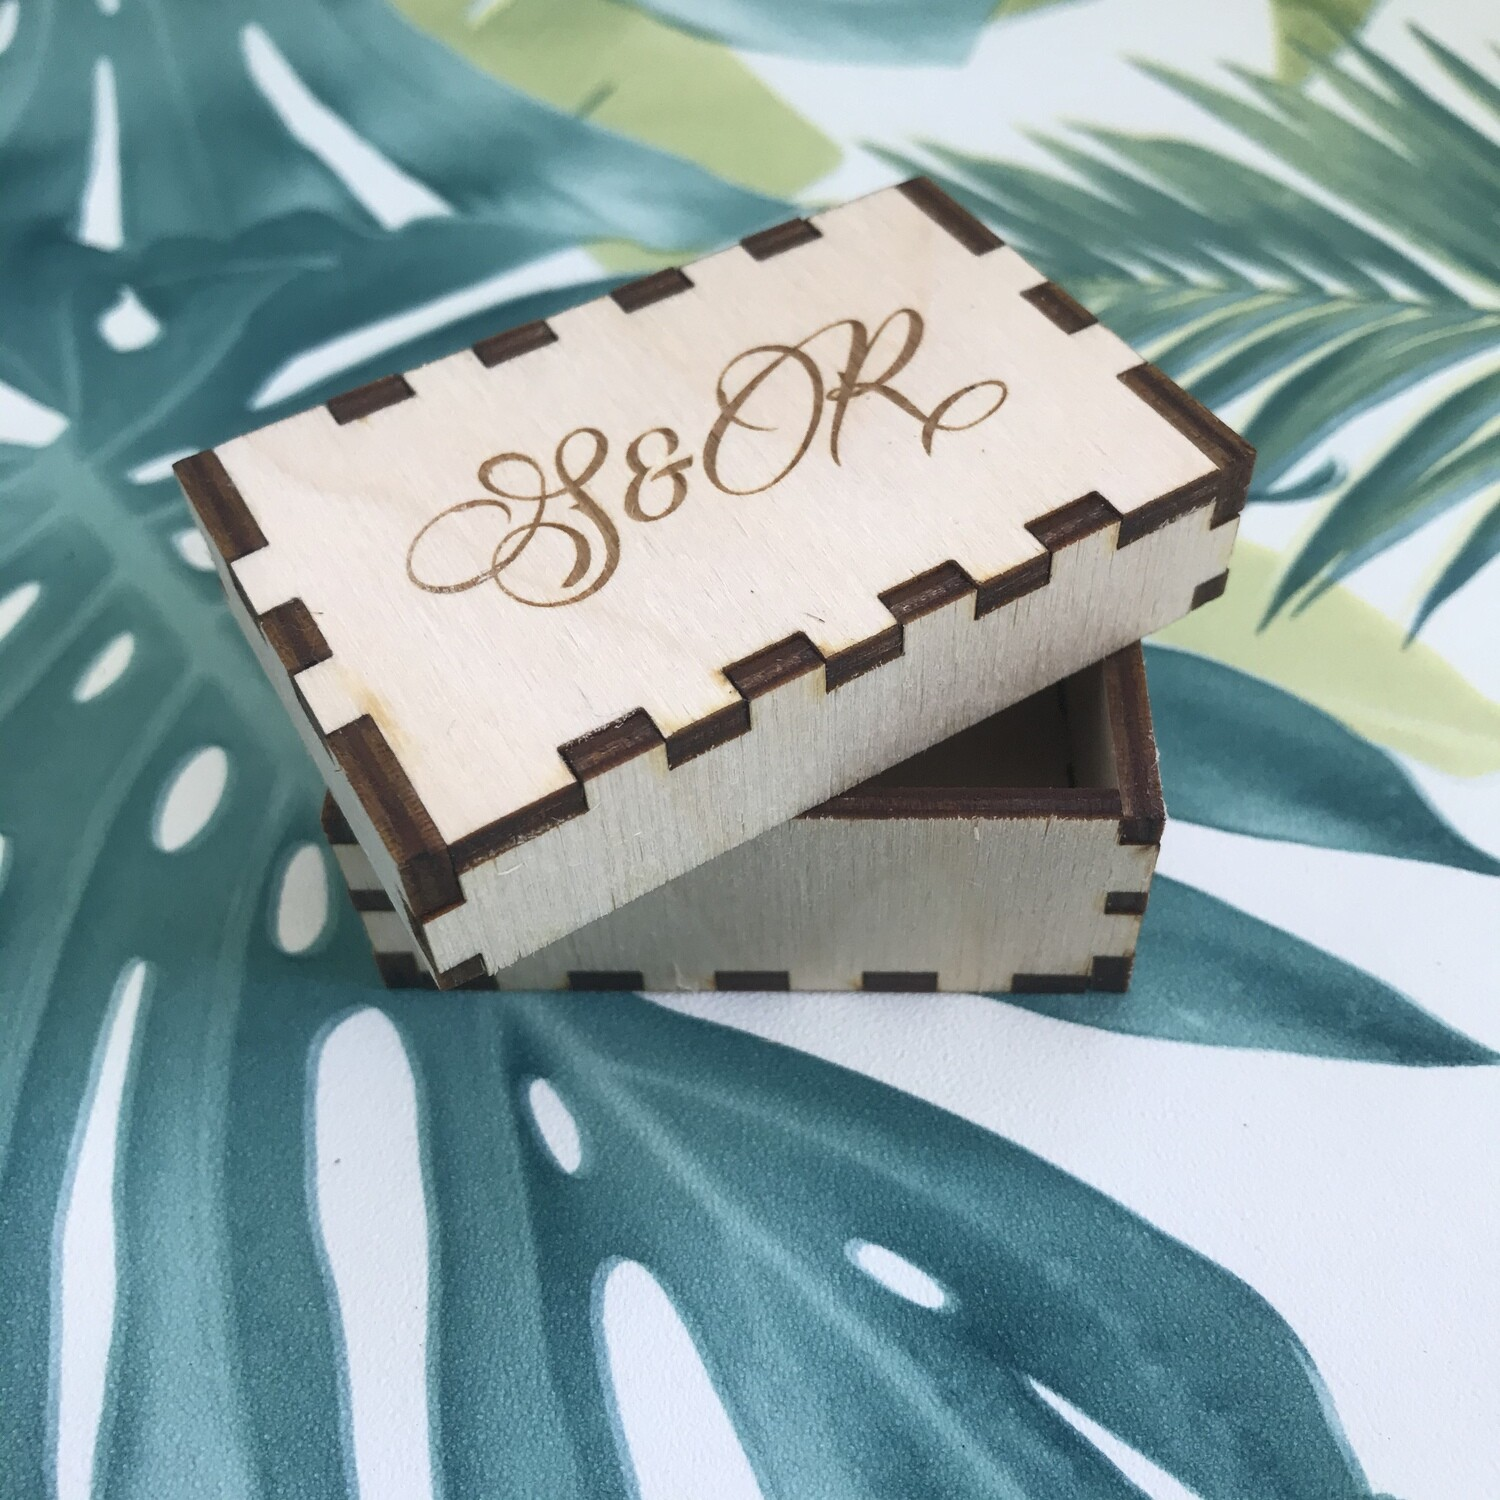 Personalised Box - Customisable Box - Favour Box - Ring Box - Craft Box - Branded Box